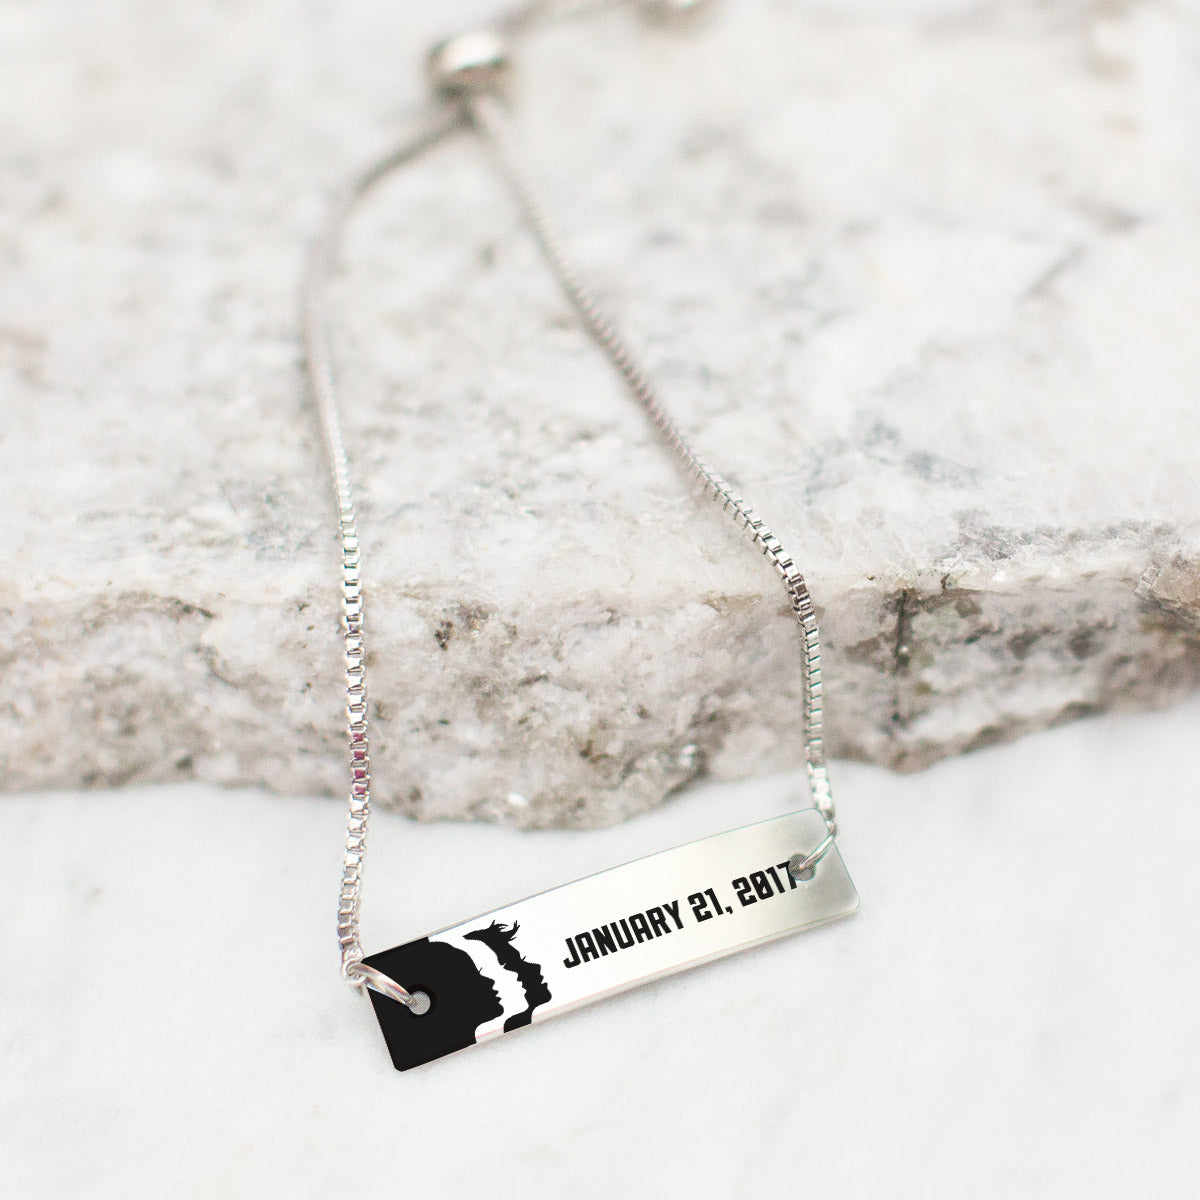 Women's March - 1.21.17 Silver Bar Adjustable Bracelet